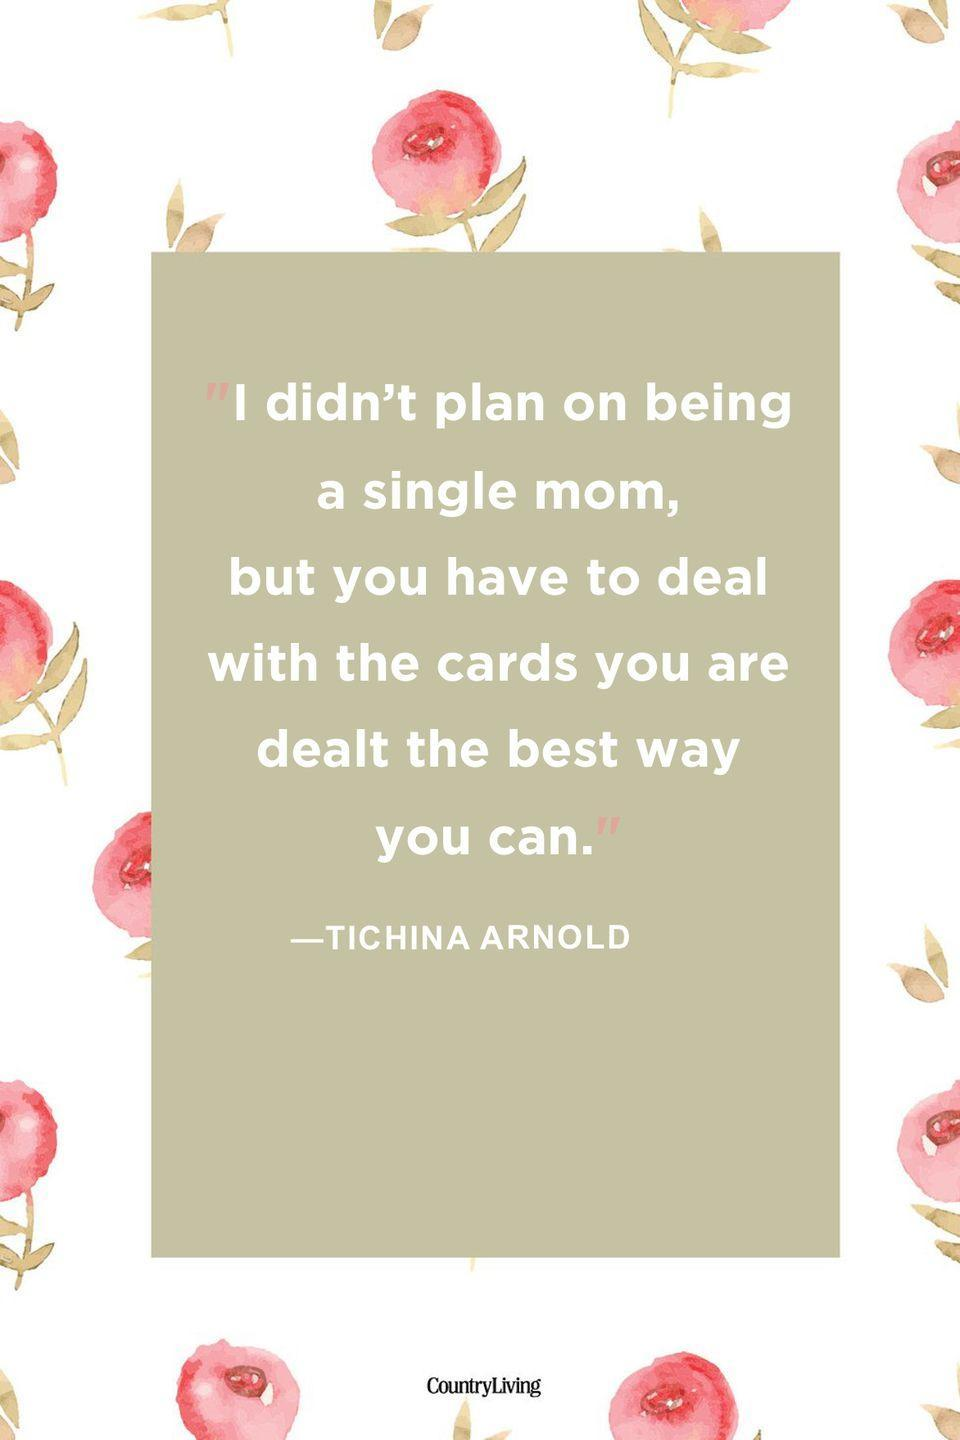 "<p>""I didn't plan on being a single mom, but you have to deal with the cards you are dealt the best way you can""</p>"